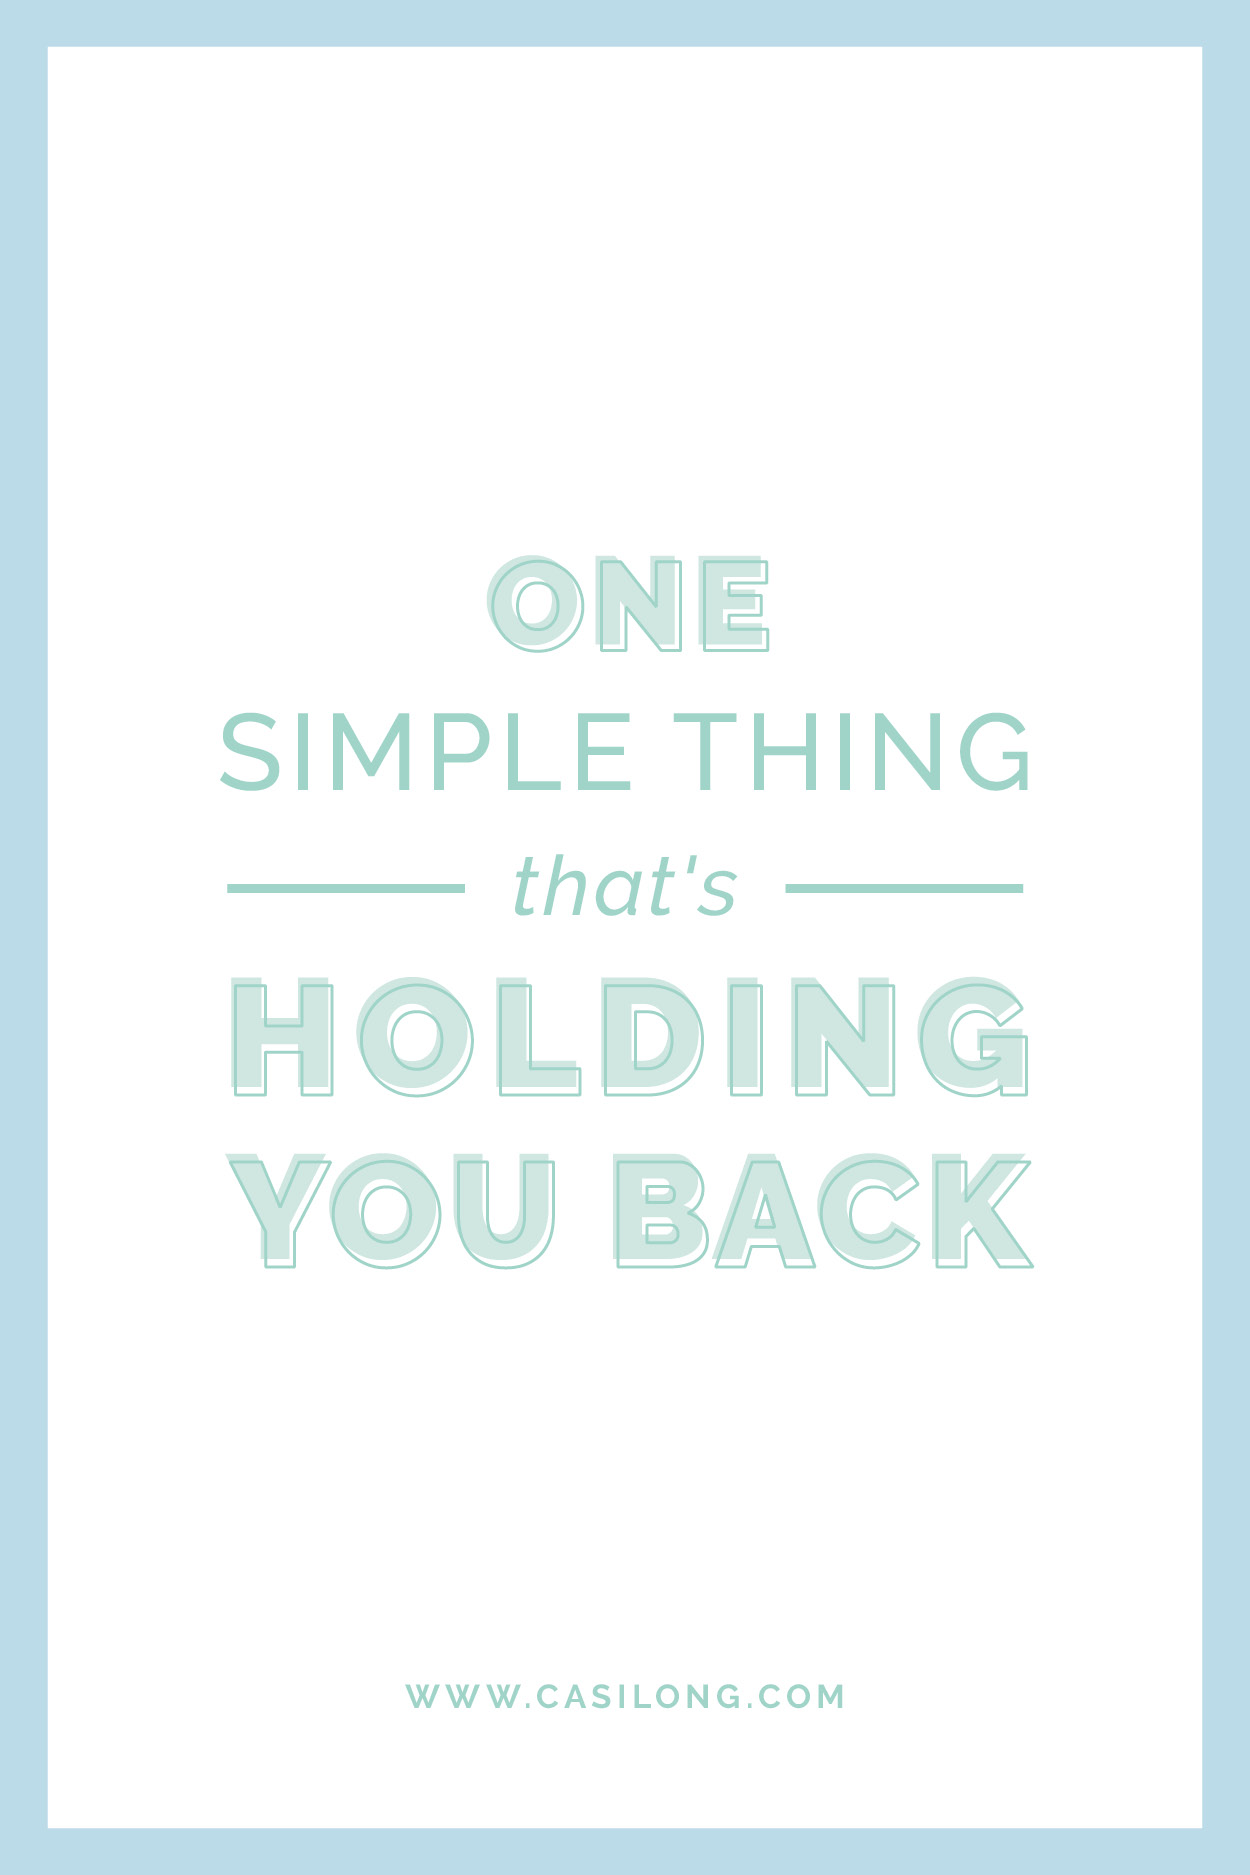 One simple thing that's holding you back | casilong.com/blog